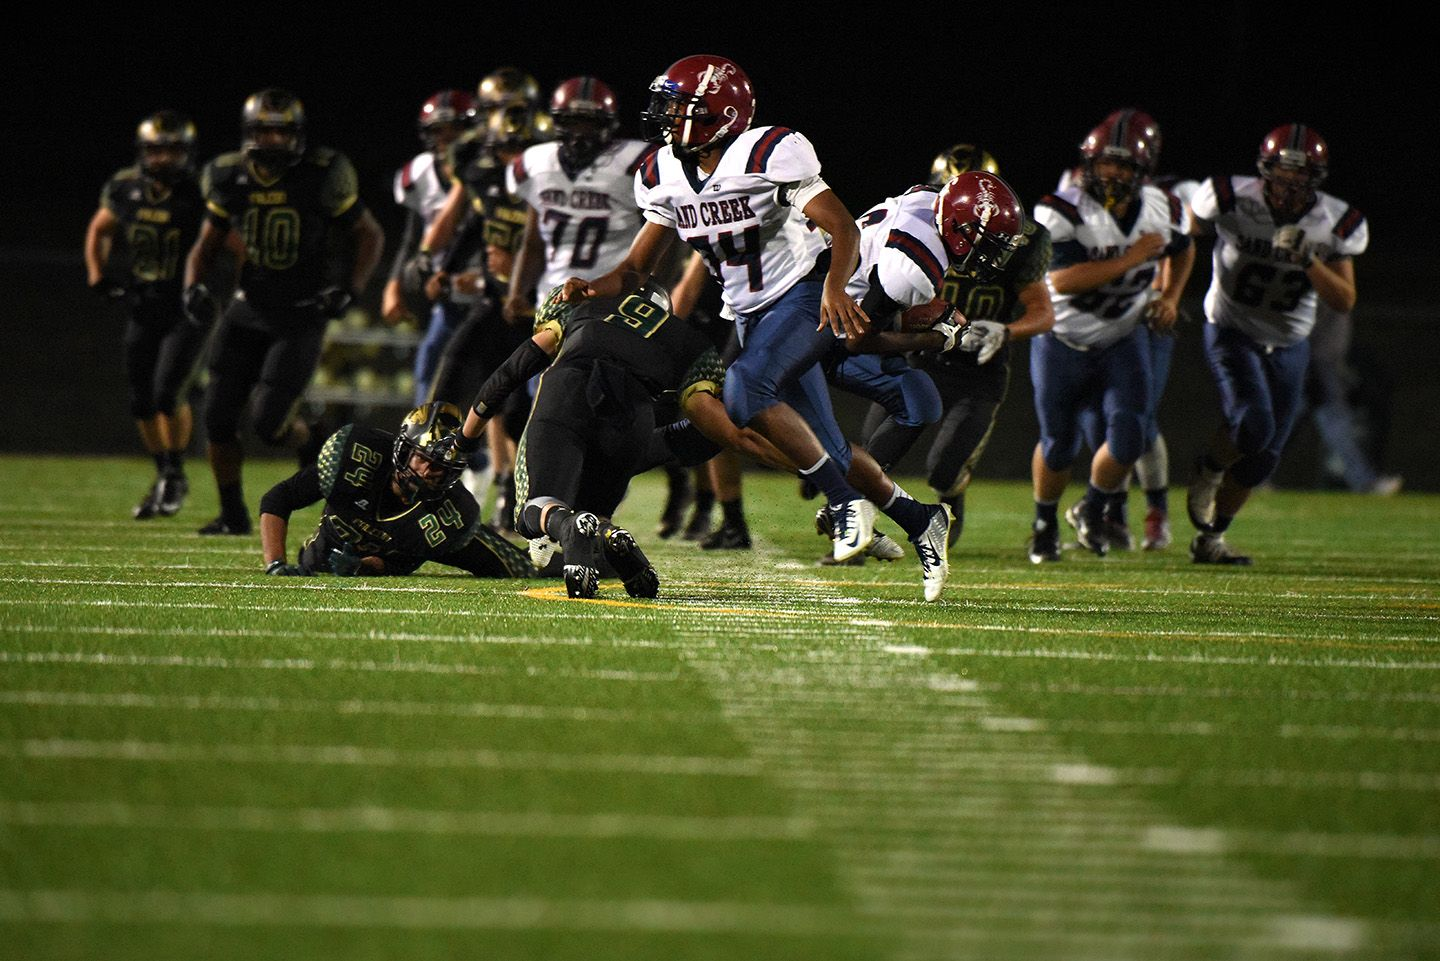 The Falcons Rush The Scorpions Of Sand Creek High School During A Homecoming Football Game Oct 9 At Falcon High School In D Homecoming Football Games Football